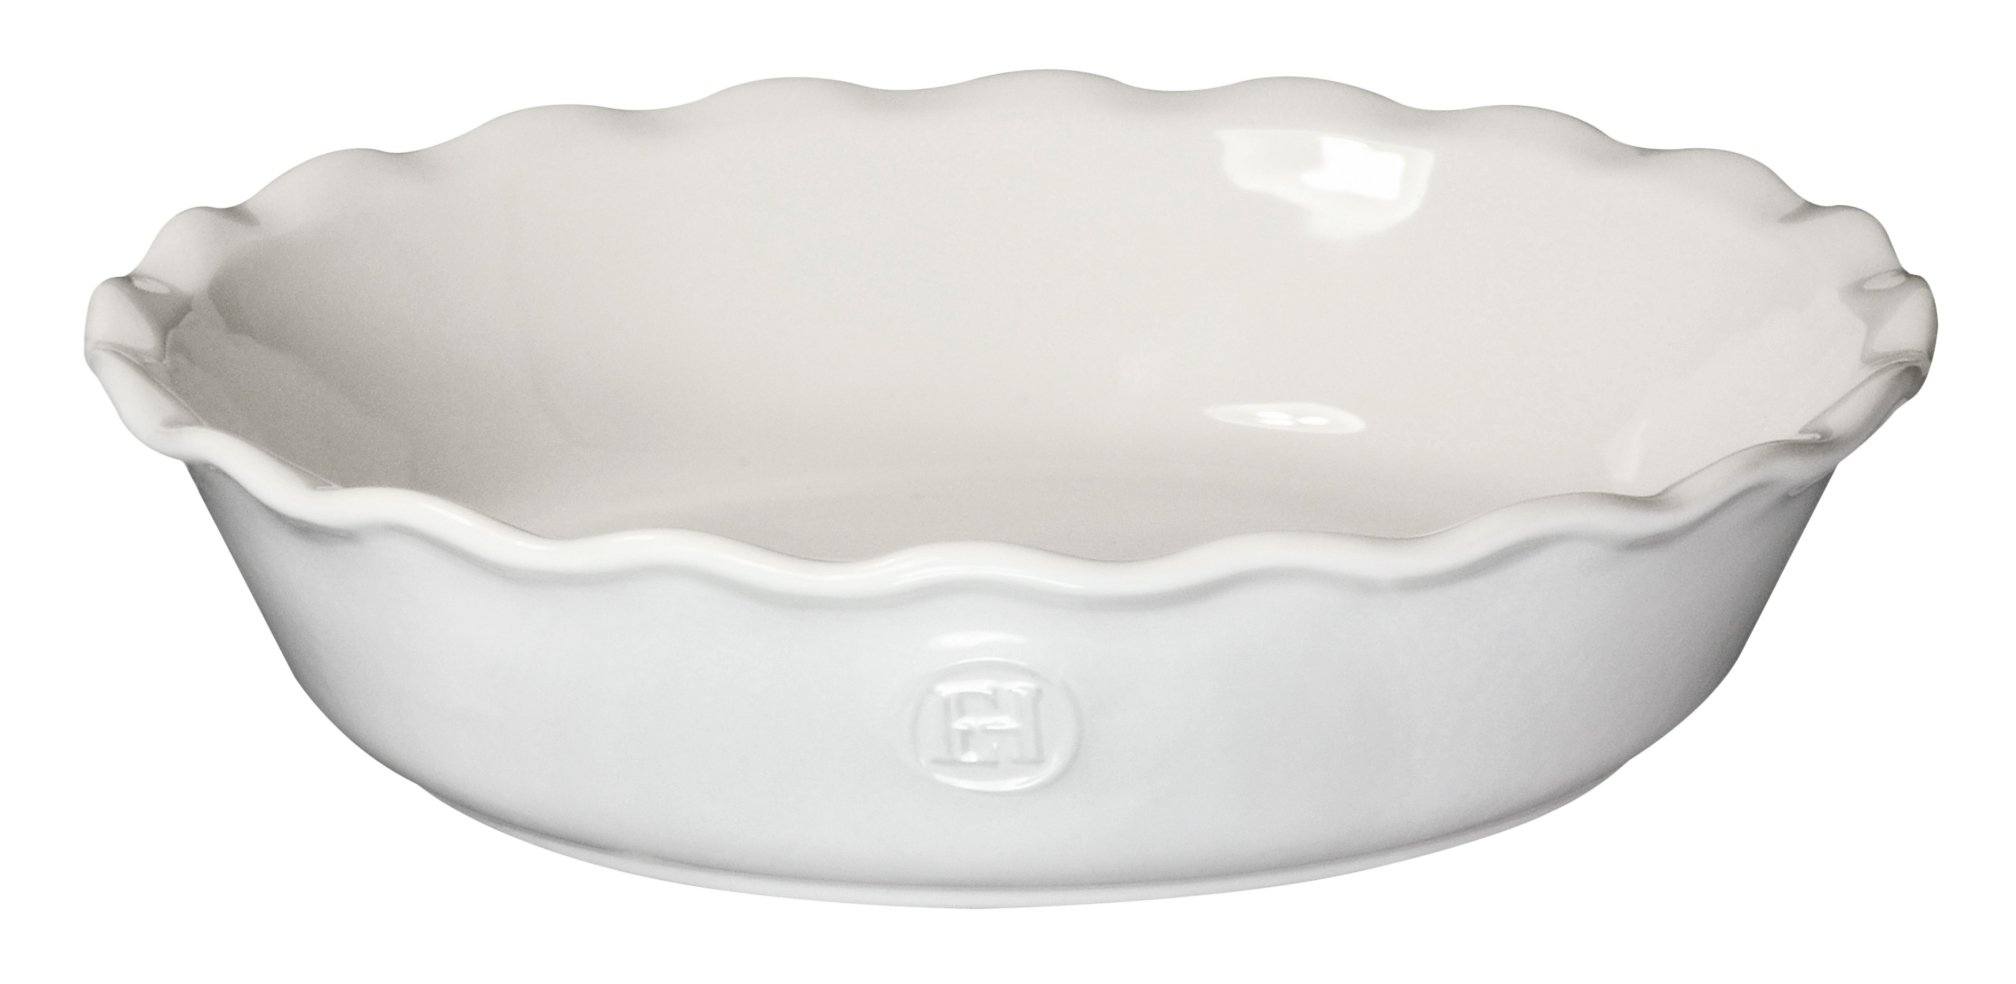 Emile Henry Made In France HR Modern Classics Pie Dish, 9'', White by Emile Henry